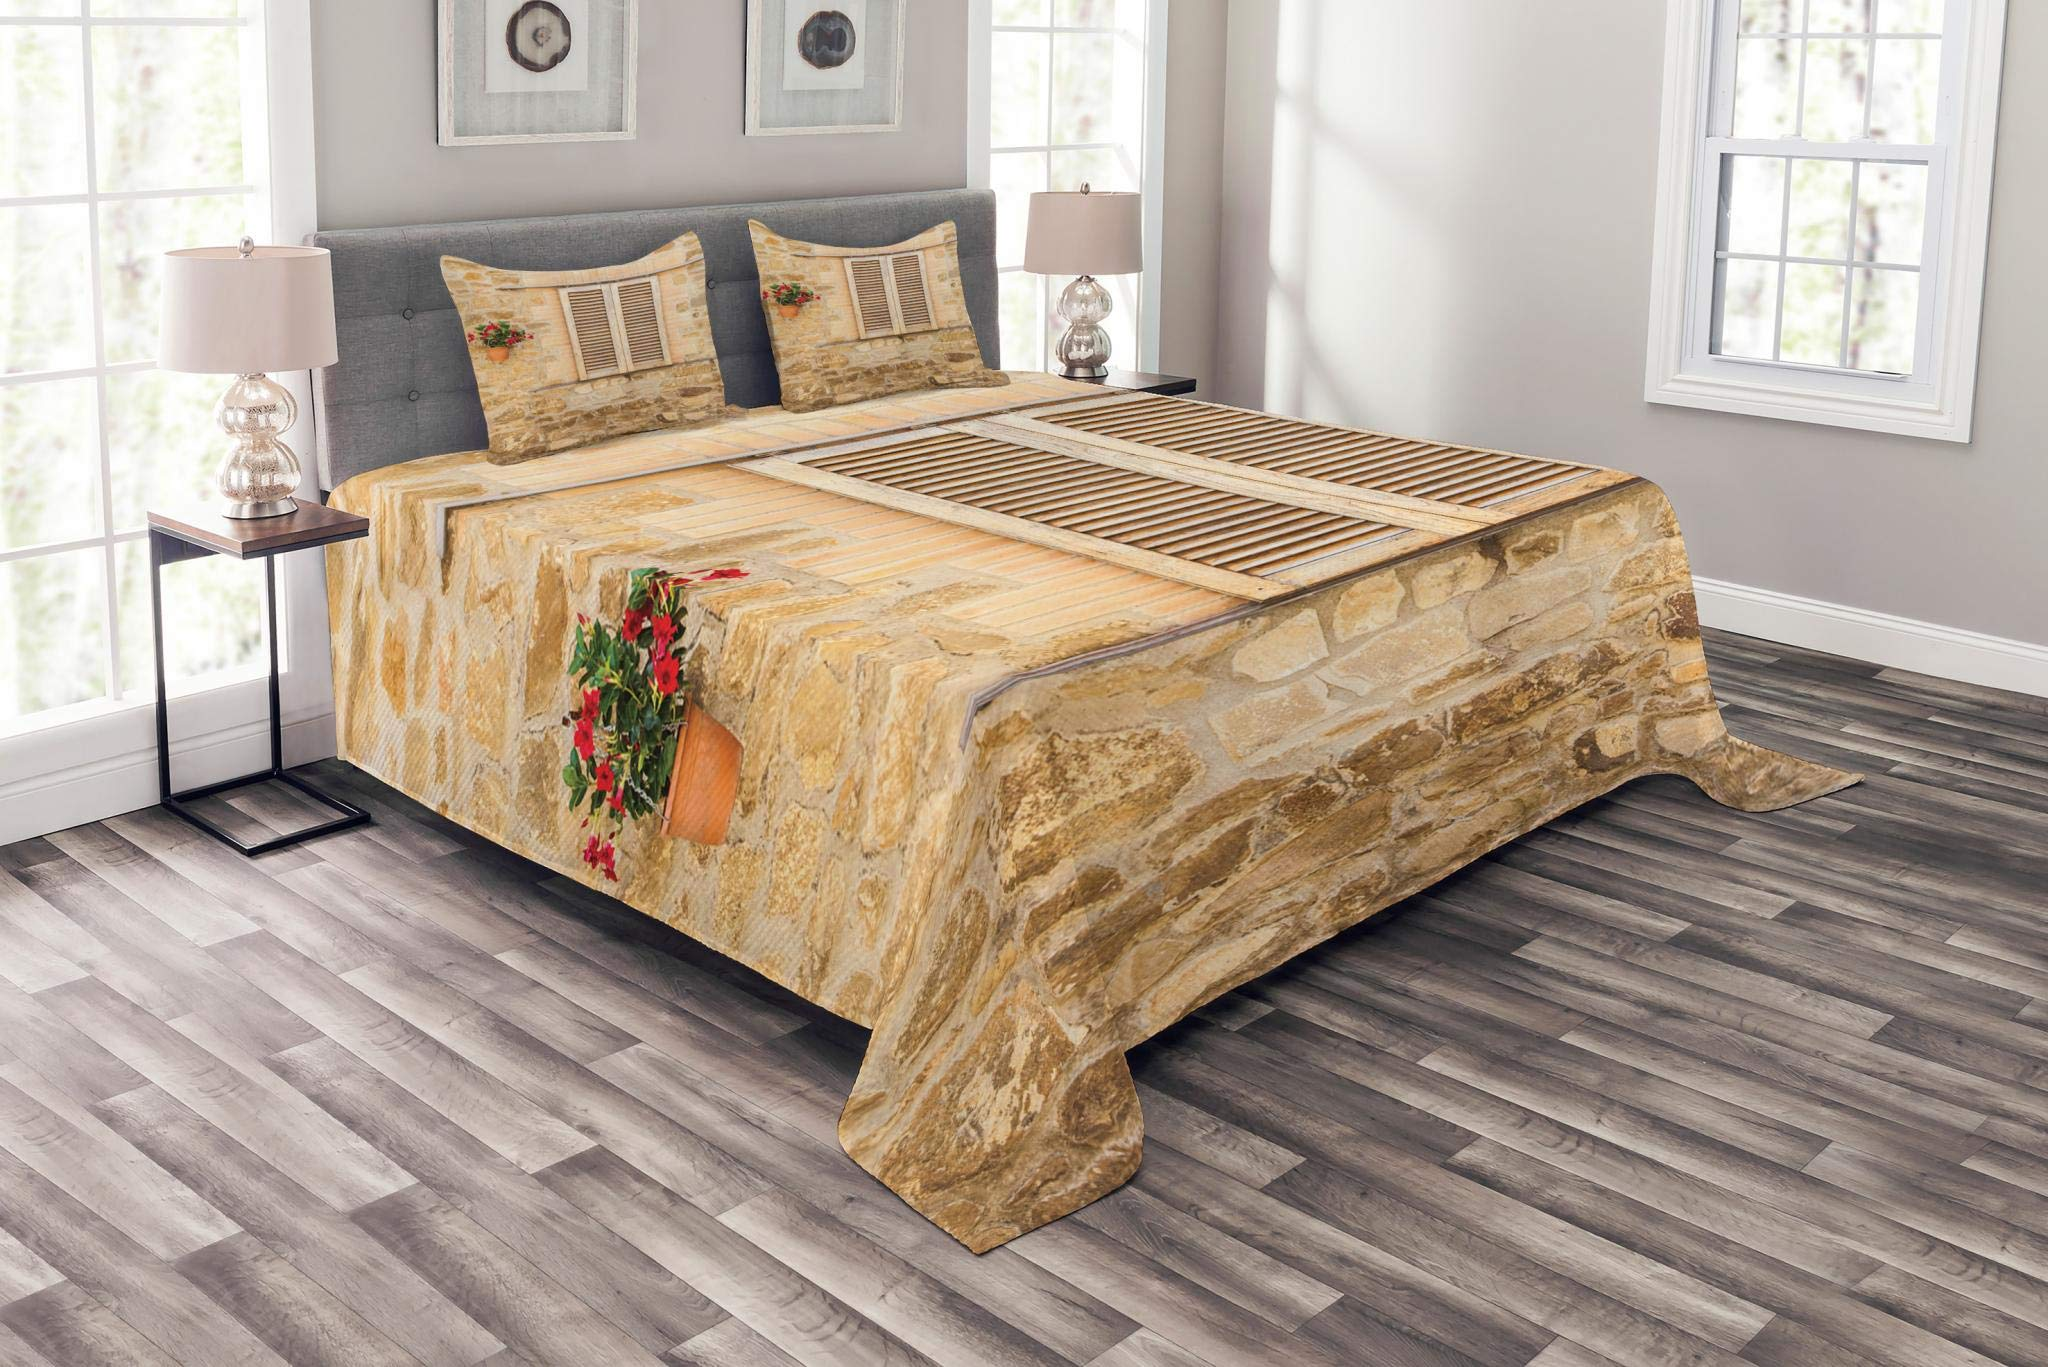 Lunarable Tuscan Bedspread Set King Size, Rustic Stone House and Window Shutters Flower Pot on Wall Italian Country Home Theme, Decorative Quilted 3 Piece Coverlet Set with 2 Pillow Shams, Beige